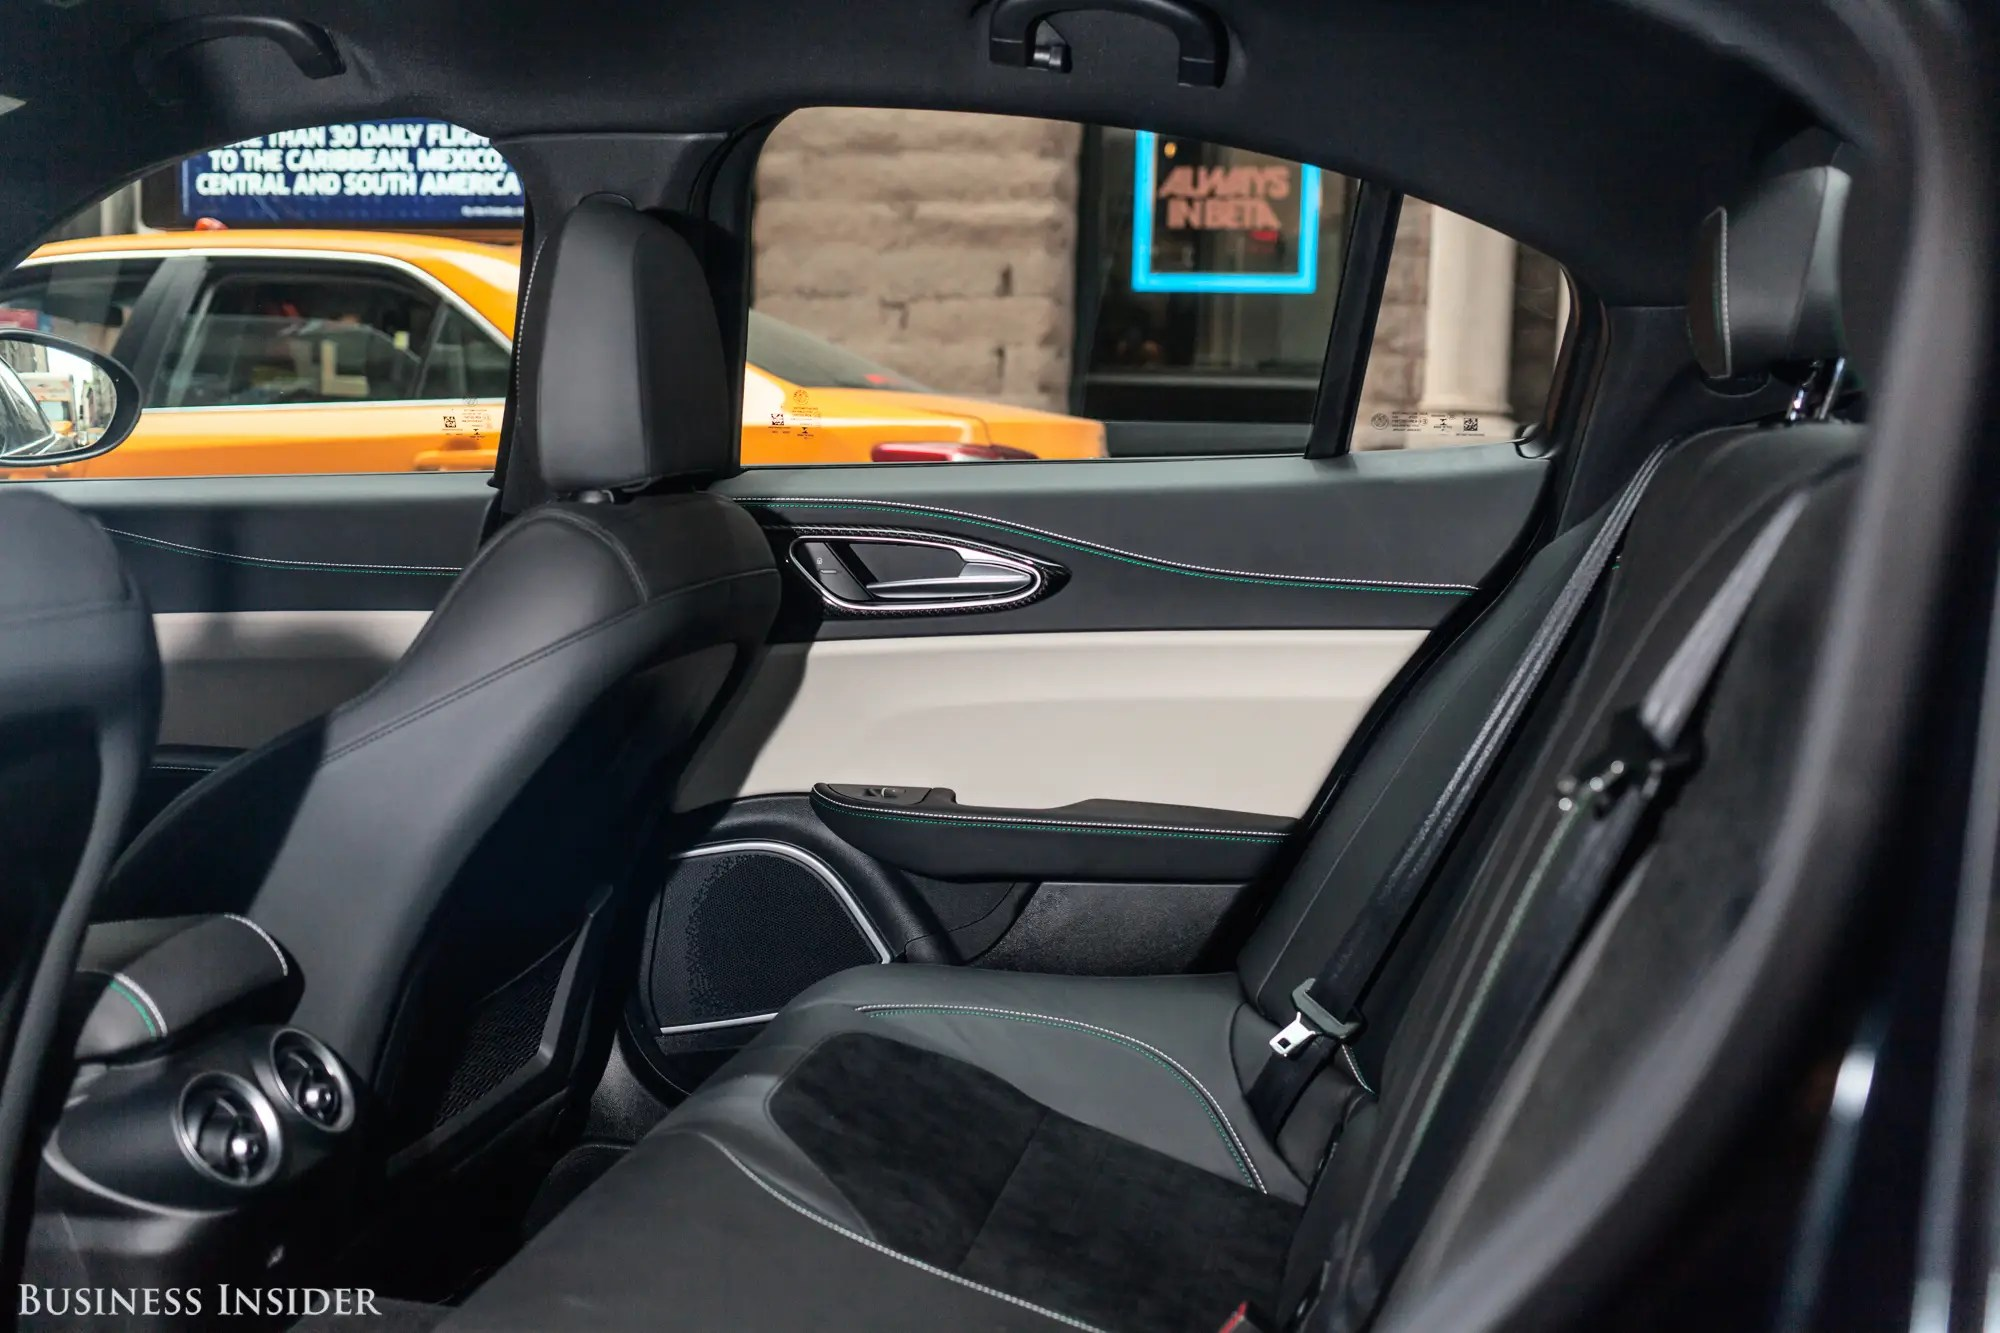 The rear seats are equally comfy, but as with most sports sedans, legroom isn't copious.